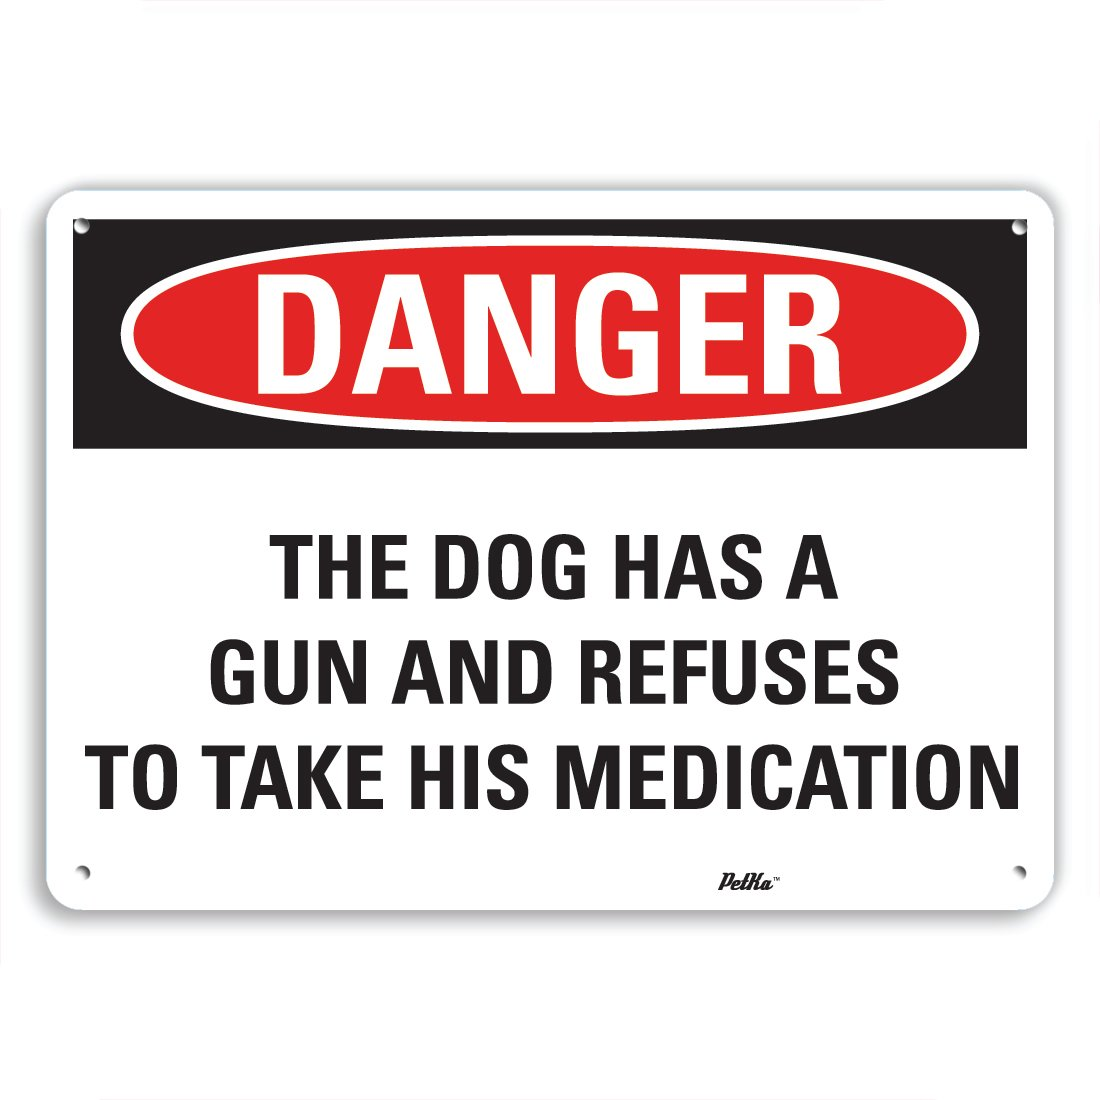 PetKa Signs and Graphics PKFO-0165-NA_10x7''The Dog has a gun and refuses to take his medication'' Aluminum Sign, 10'' x 7''